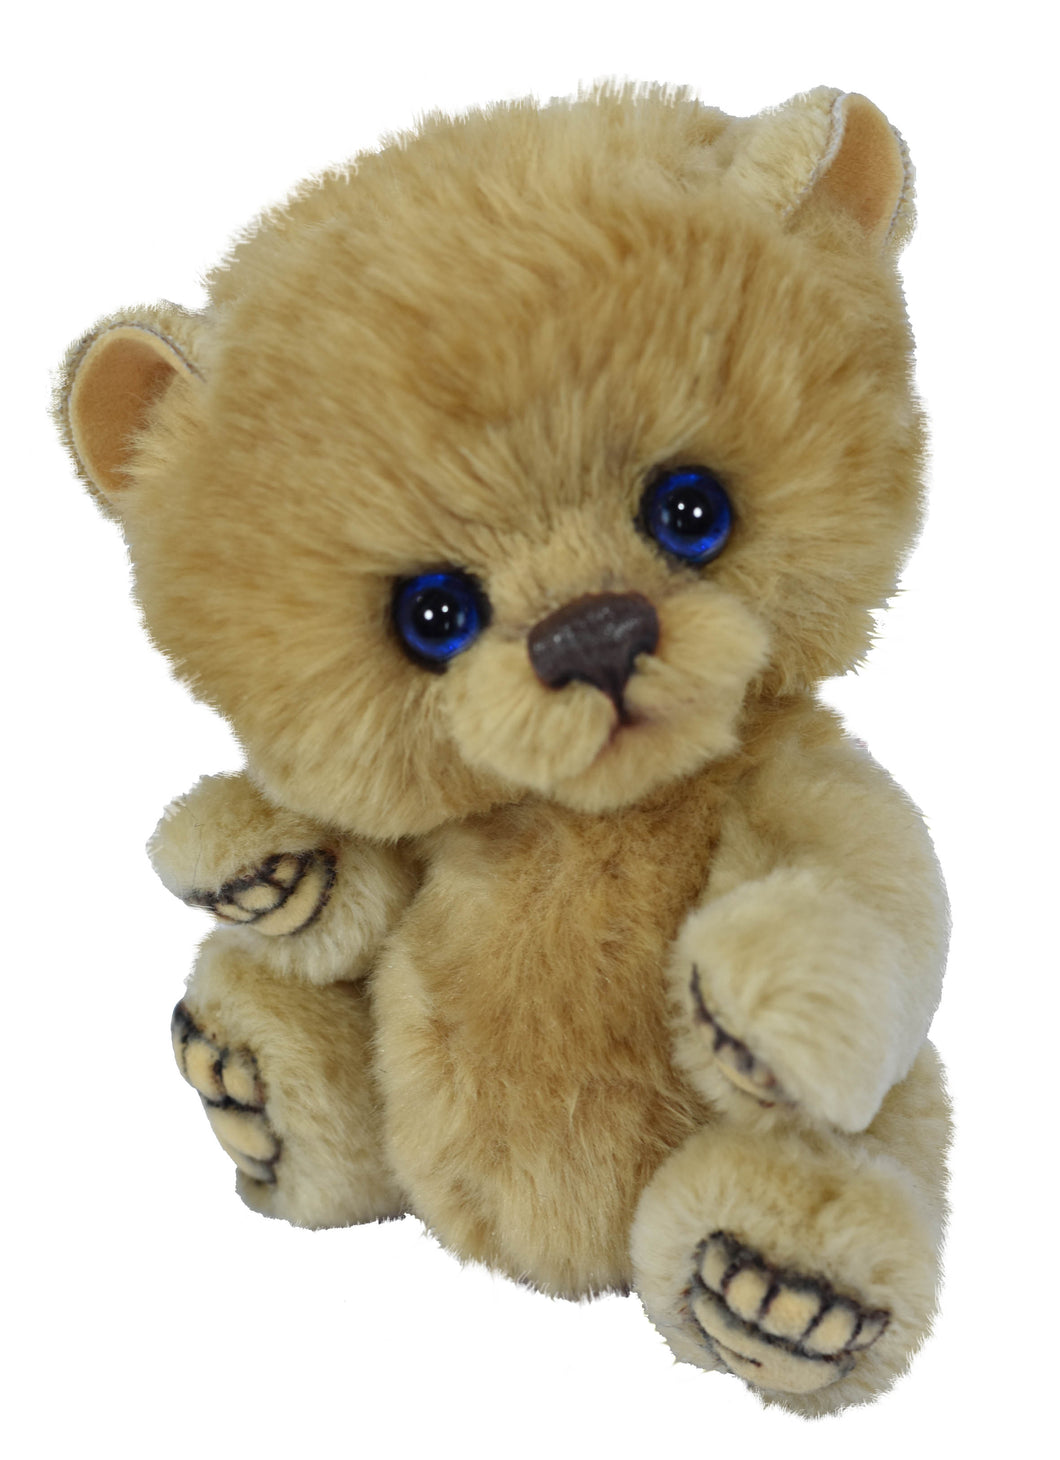 BEAR BARRY / CLEMENS HIGH QUALITY SOFT PLUSH ARTIST LIMITED BEAR